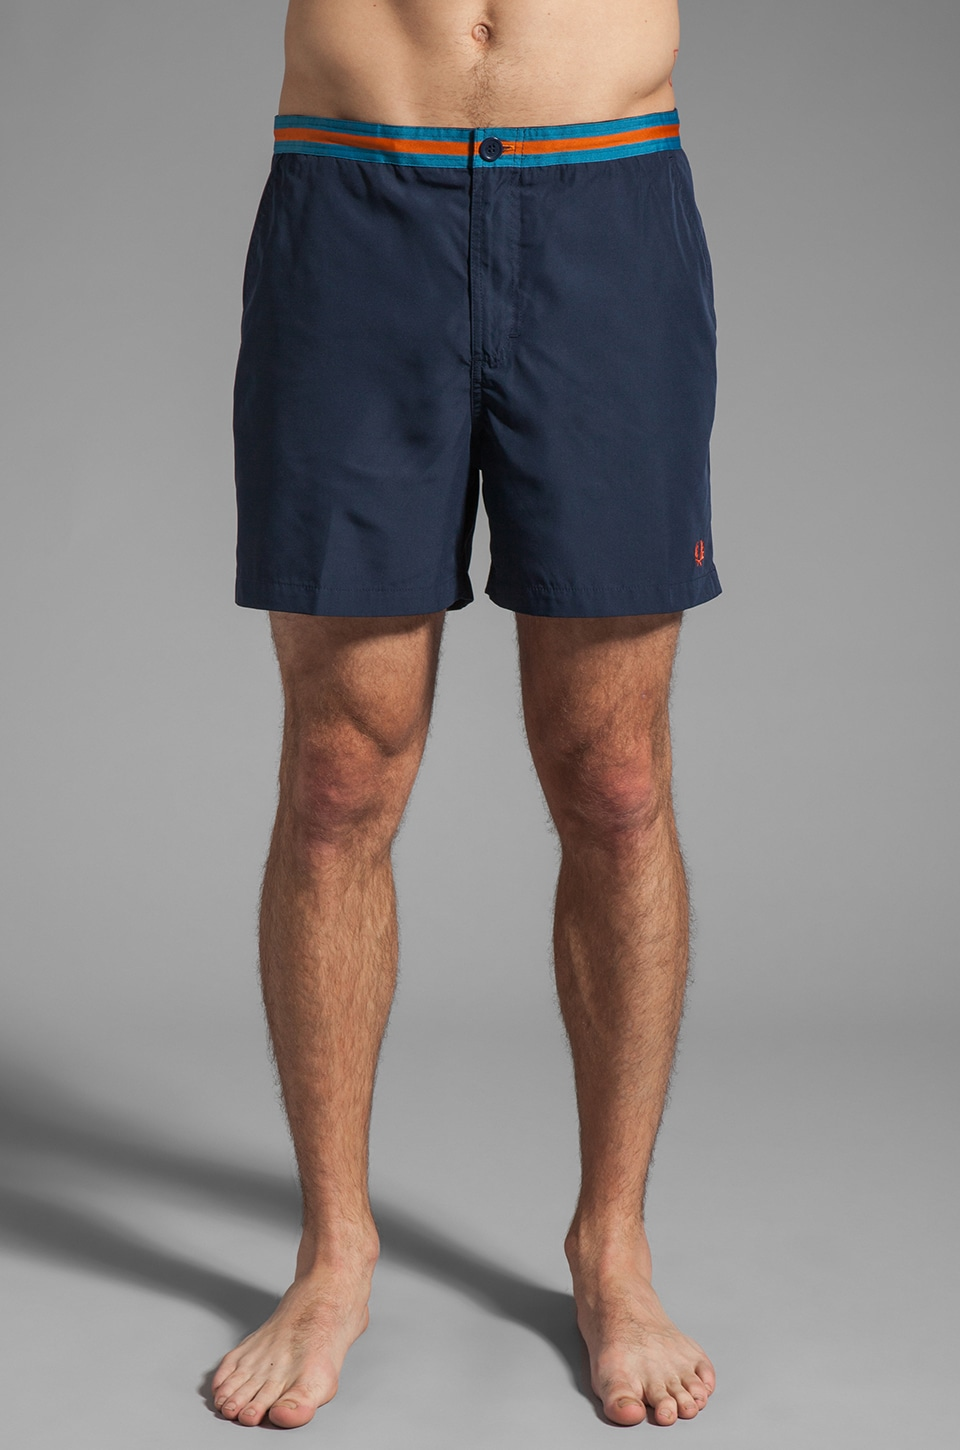 Fred Perry Taped Waistband Short in Dark Carbon